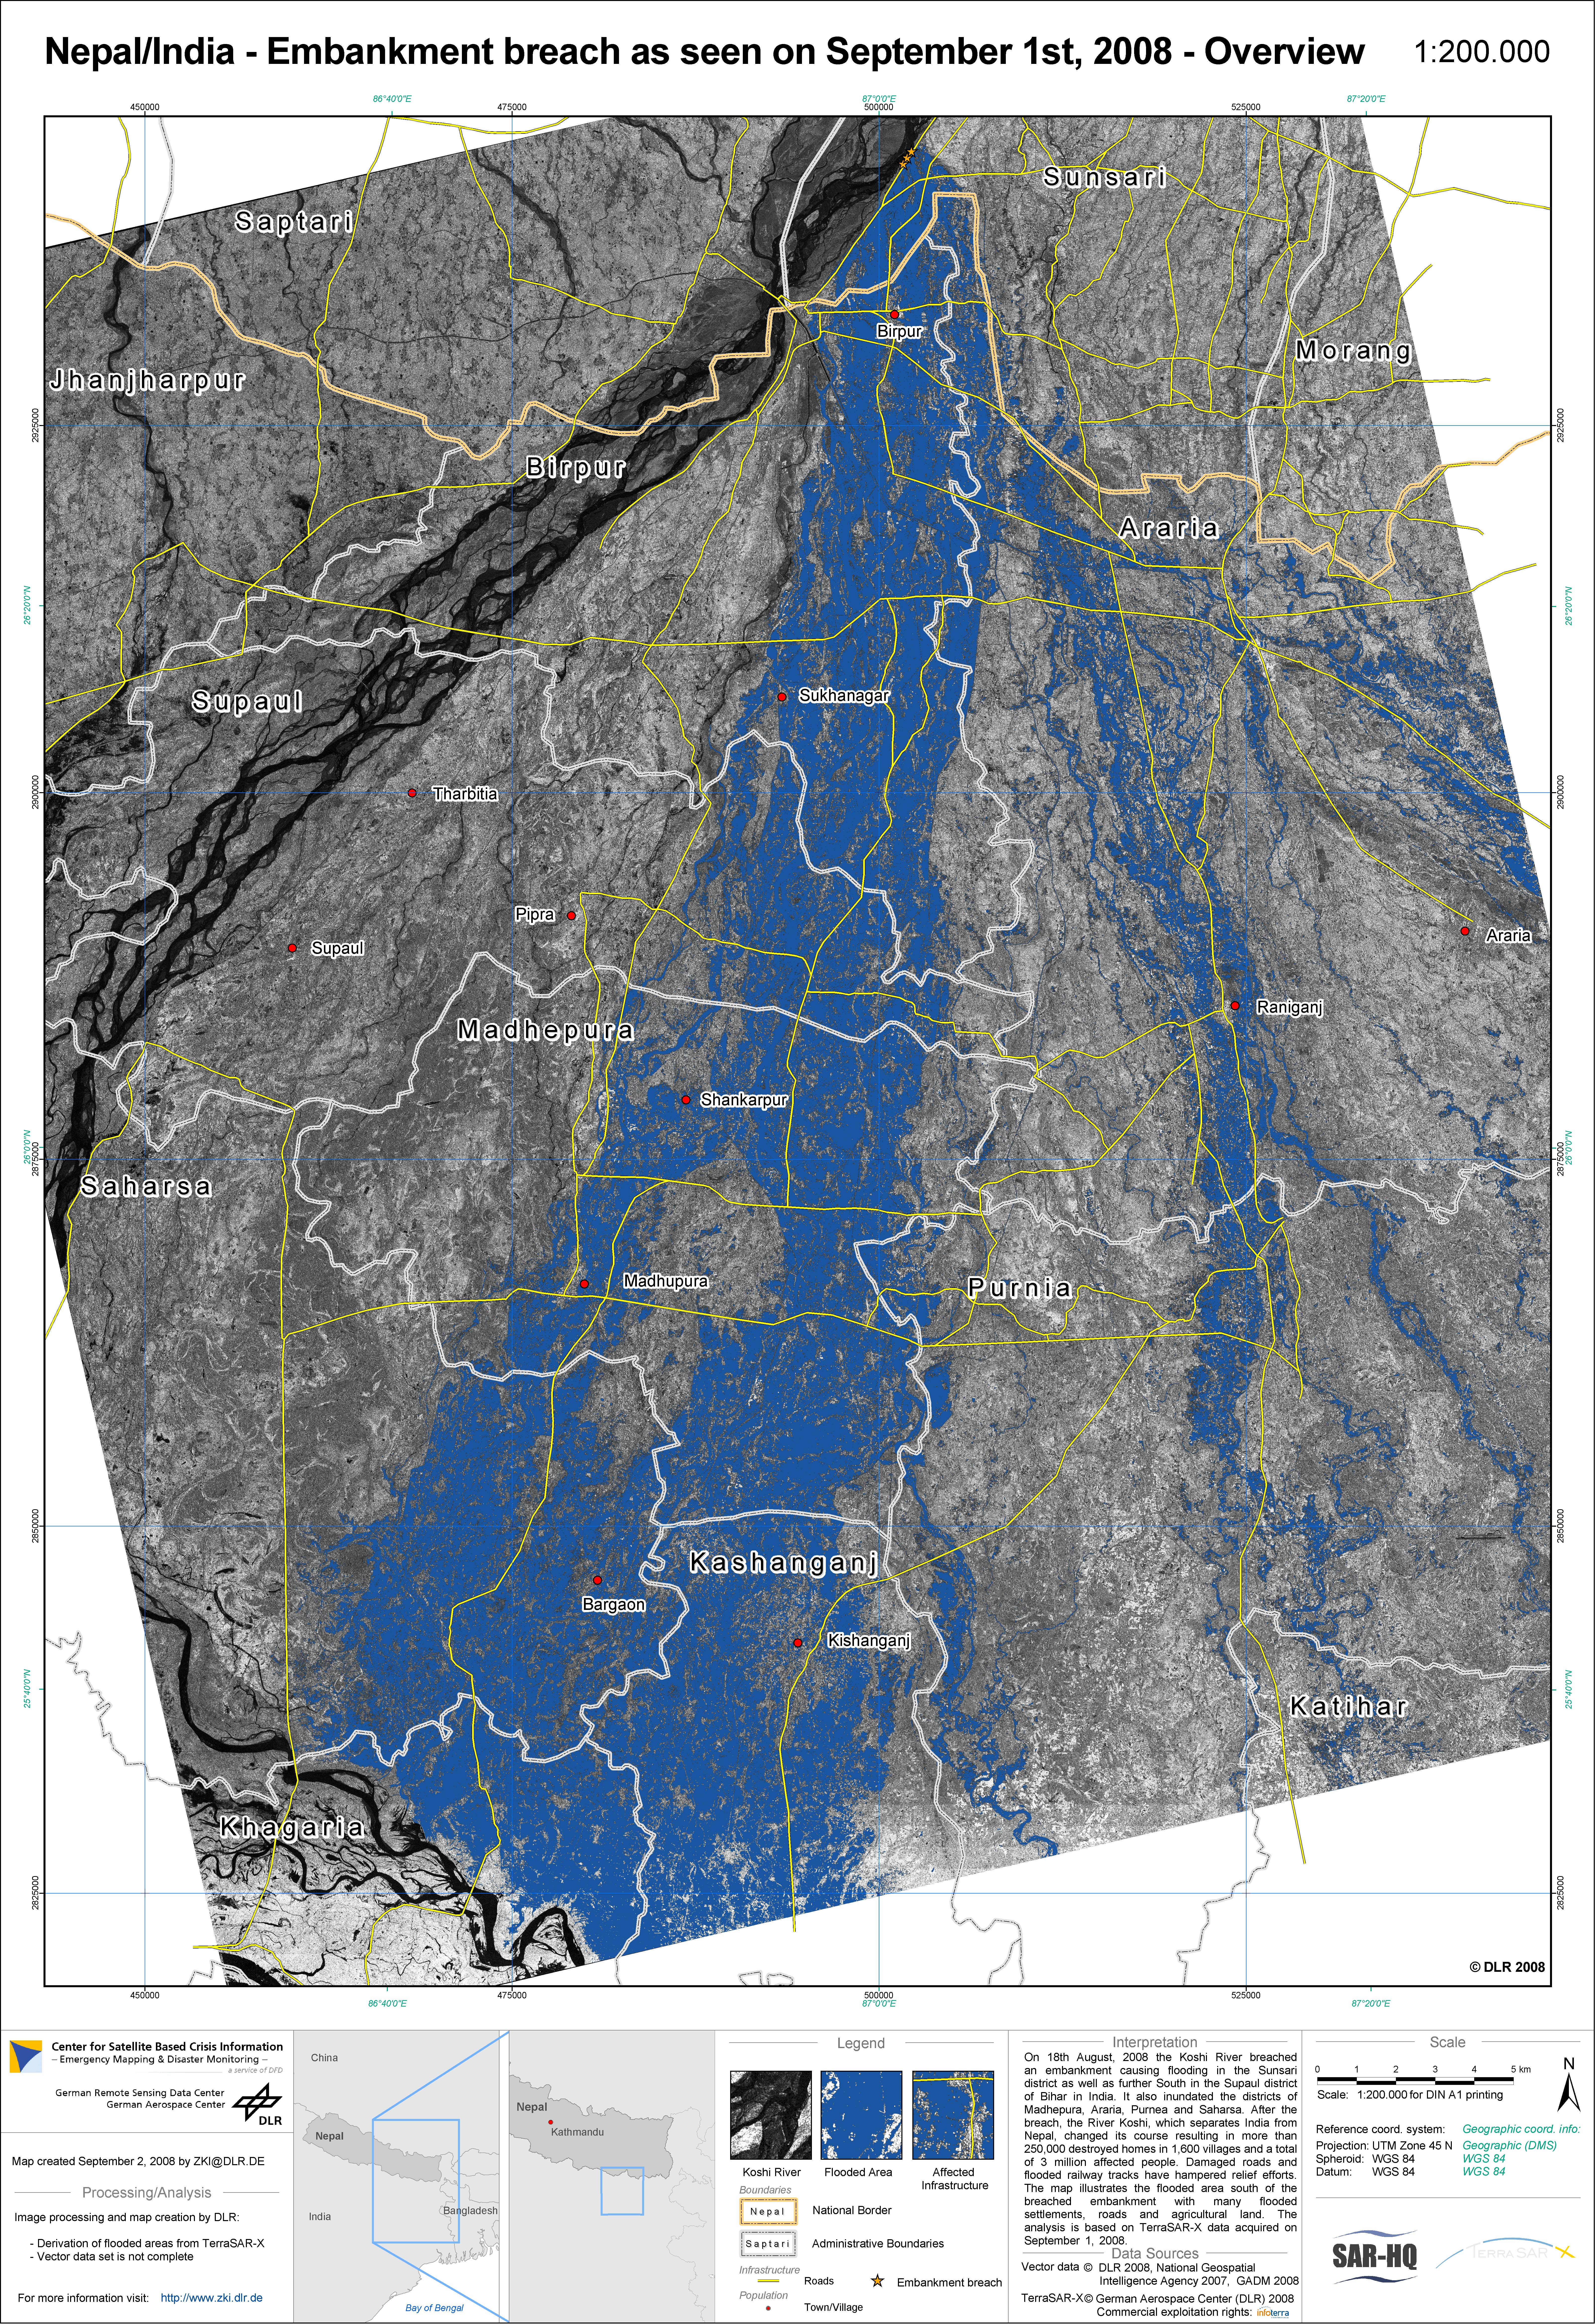 DLR - Space Administration - DLR mapping provides rapid